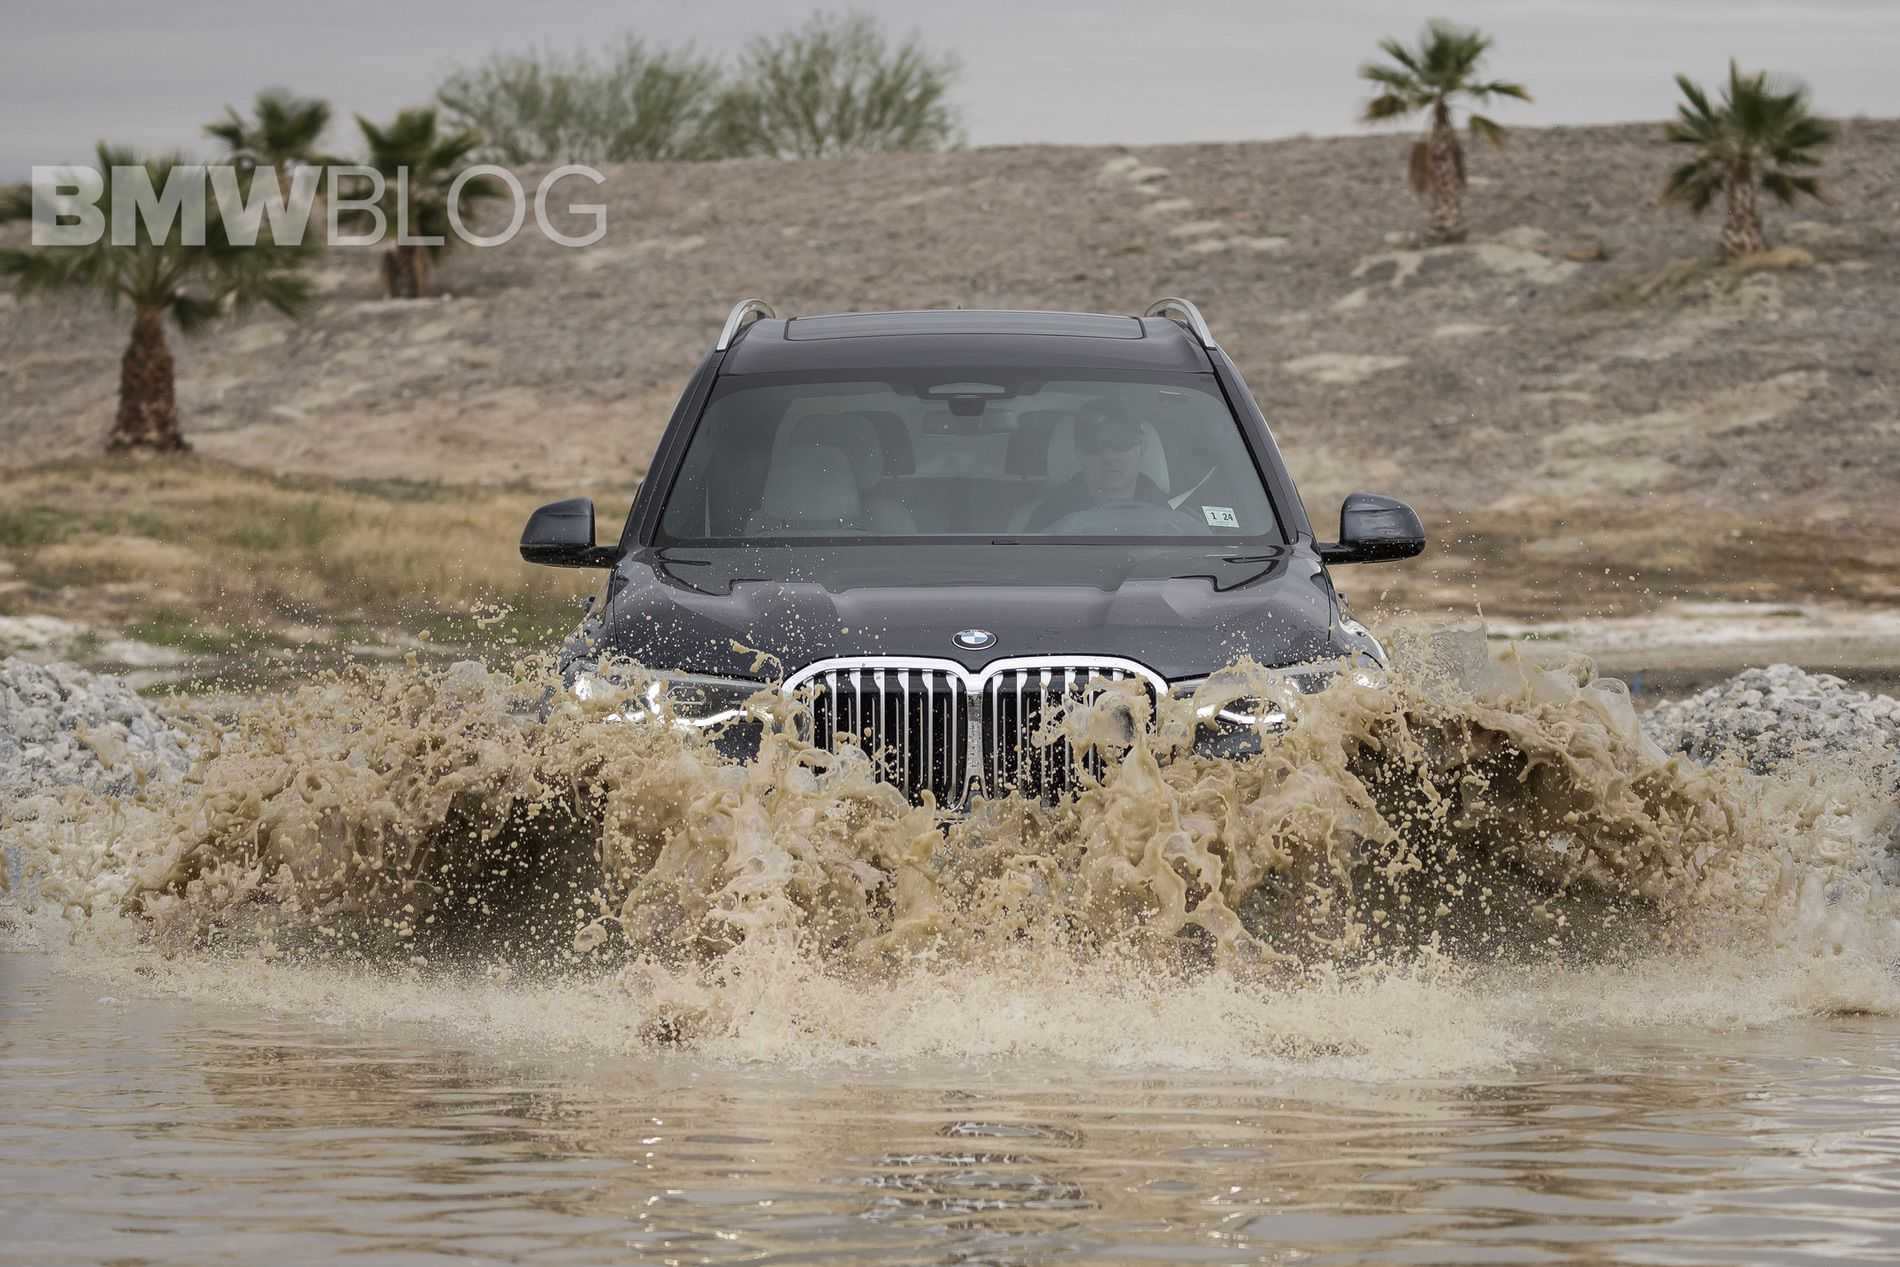 More fun with the BMW X7 on an off-road course